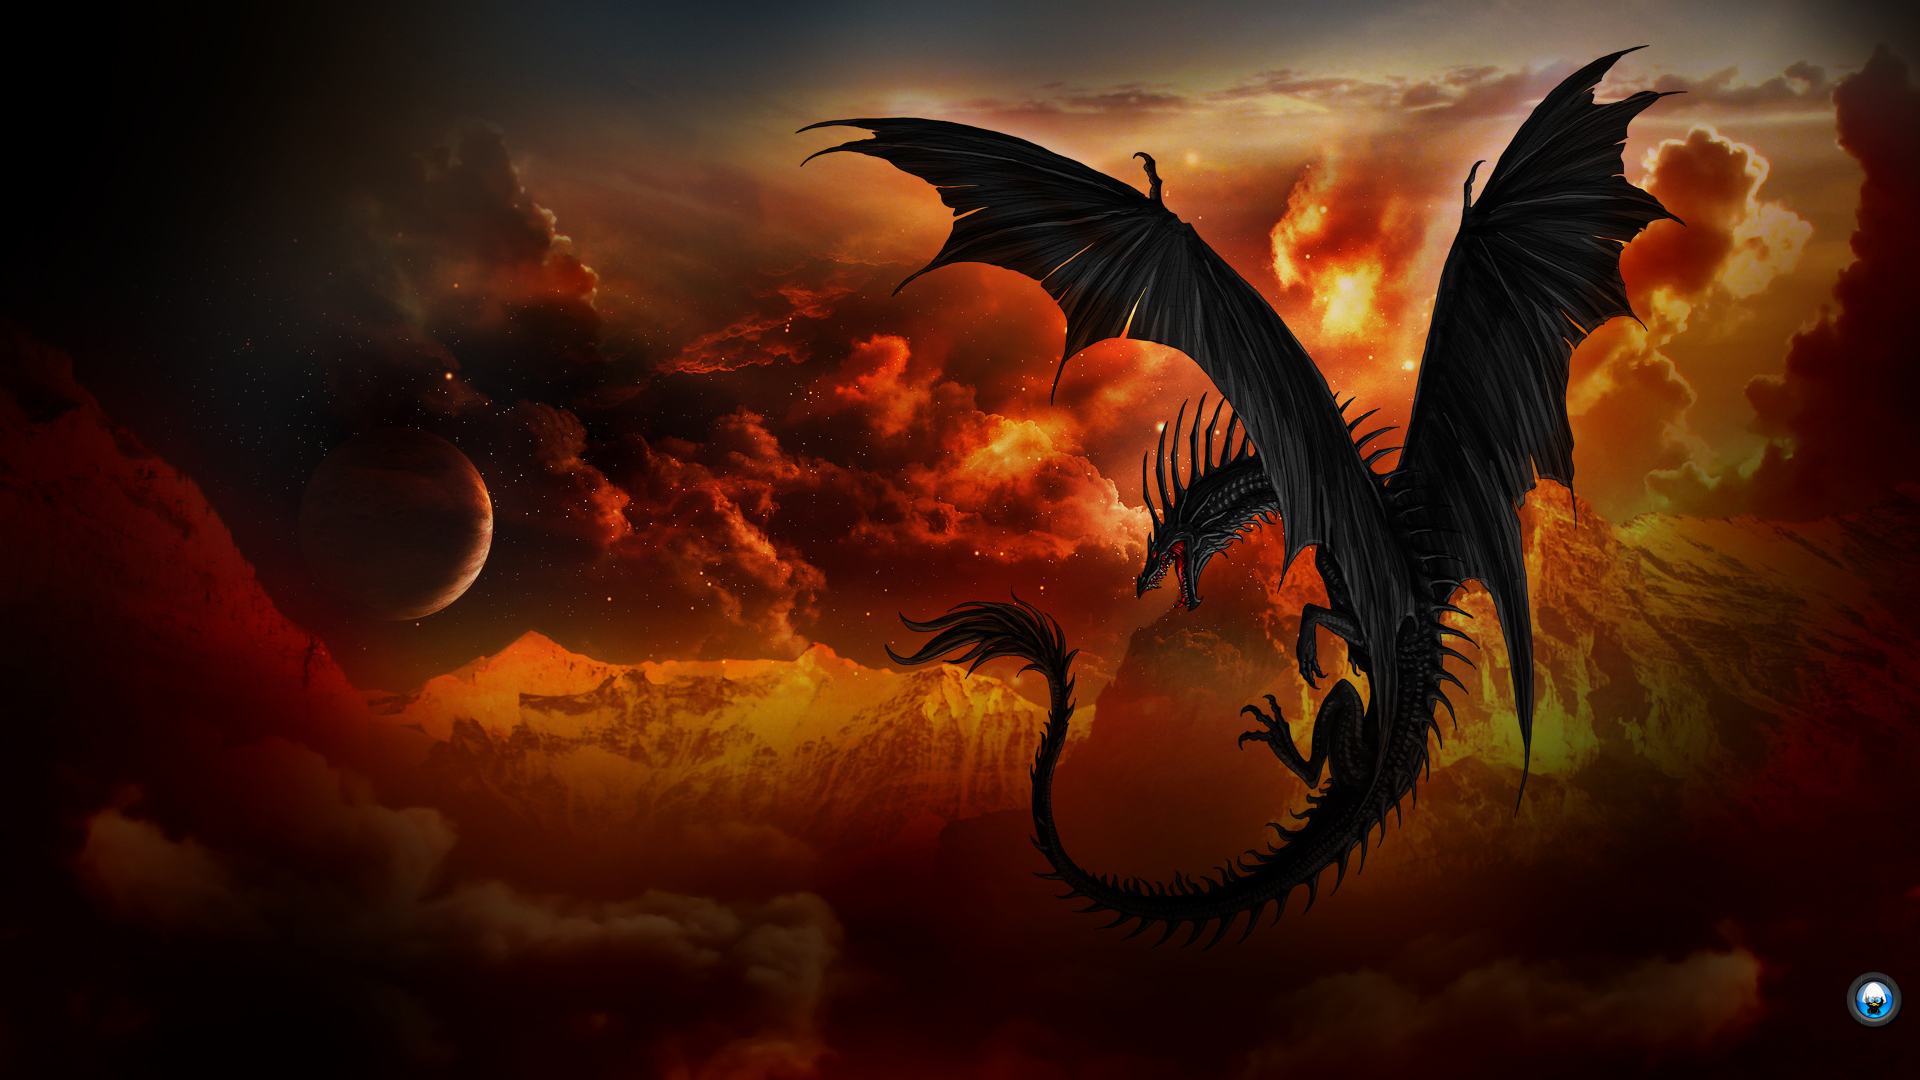 Dragon Wallpaper Themes HD 5165 Wallpaper Cool Walldiskpapercom 1920x1080